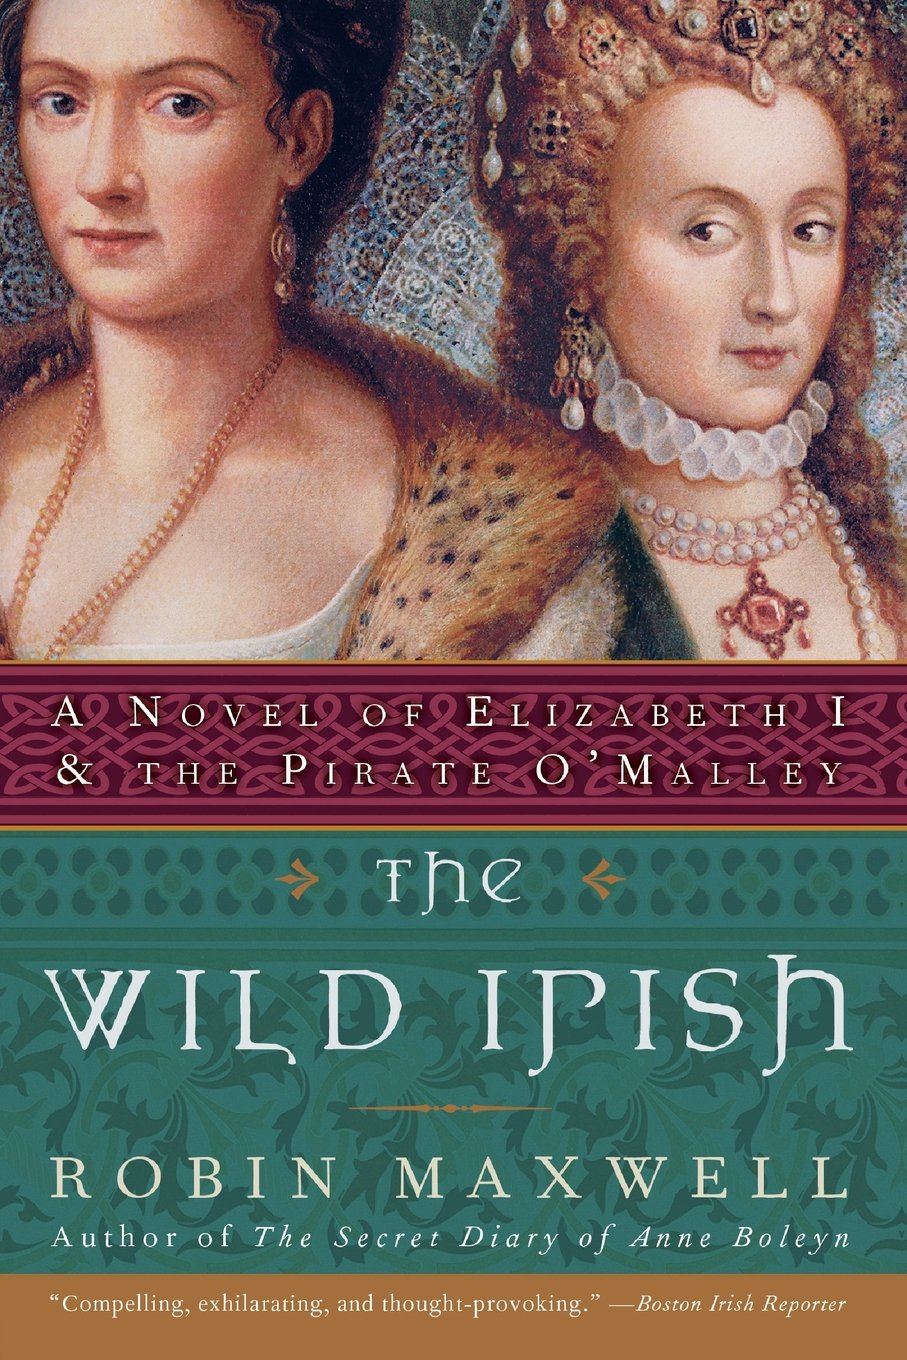 """Book cover for The Wild Irish by Robin Maxwell, Author of The Secret Diary of Anne Boleyn. The quote at the bottom in the tan border reads, """"Compelling, exhilarating, and thought-provoking."""" according to the Boston Irish Reporter. At the top half of the cover are two portraits mashed together. Grace O'Malley, a middle-aged white woman wearing a fur coat and a gold chain, is left and foregrounded. Elizabeth is slightly behind and to the right, egregiously decorated with pearls and gold, and wearing a white ruffle around her throat. She is sideglancing towards the left, while Grace seems to be looking towards the viewer. In a red Irish-knot border between the portraits and title is the text A Novel of Elizabeth I and the Pirate O'Malley. Source: amazon.com/Wild-Irish-Elizabeth-Pirate-OMalley/dp/0060091436"""